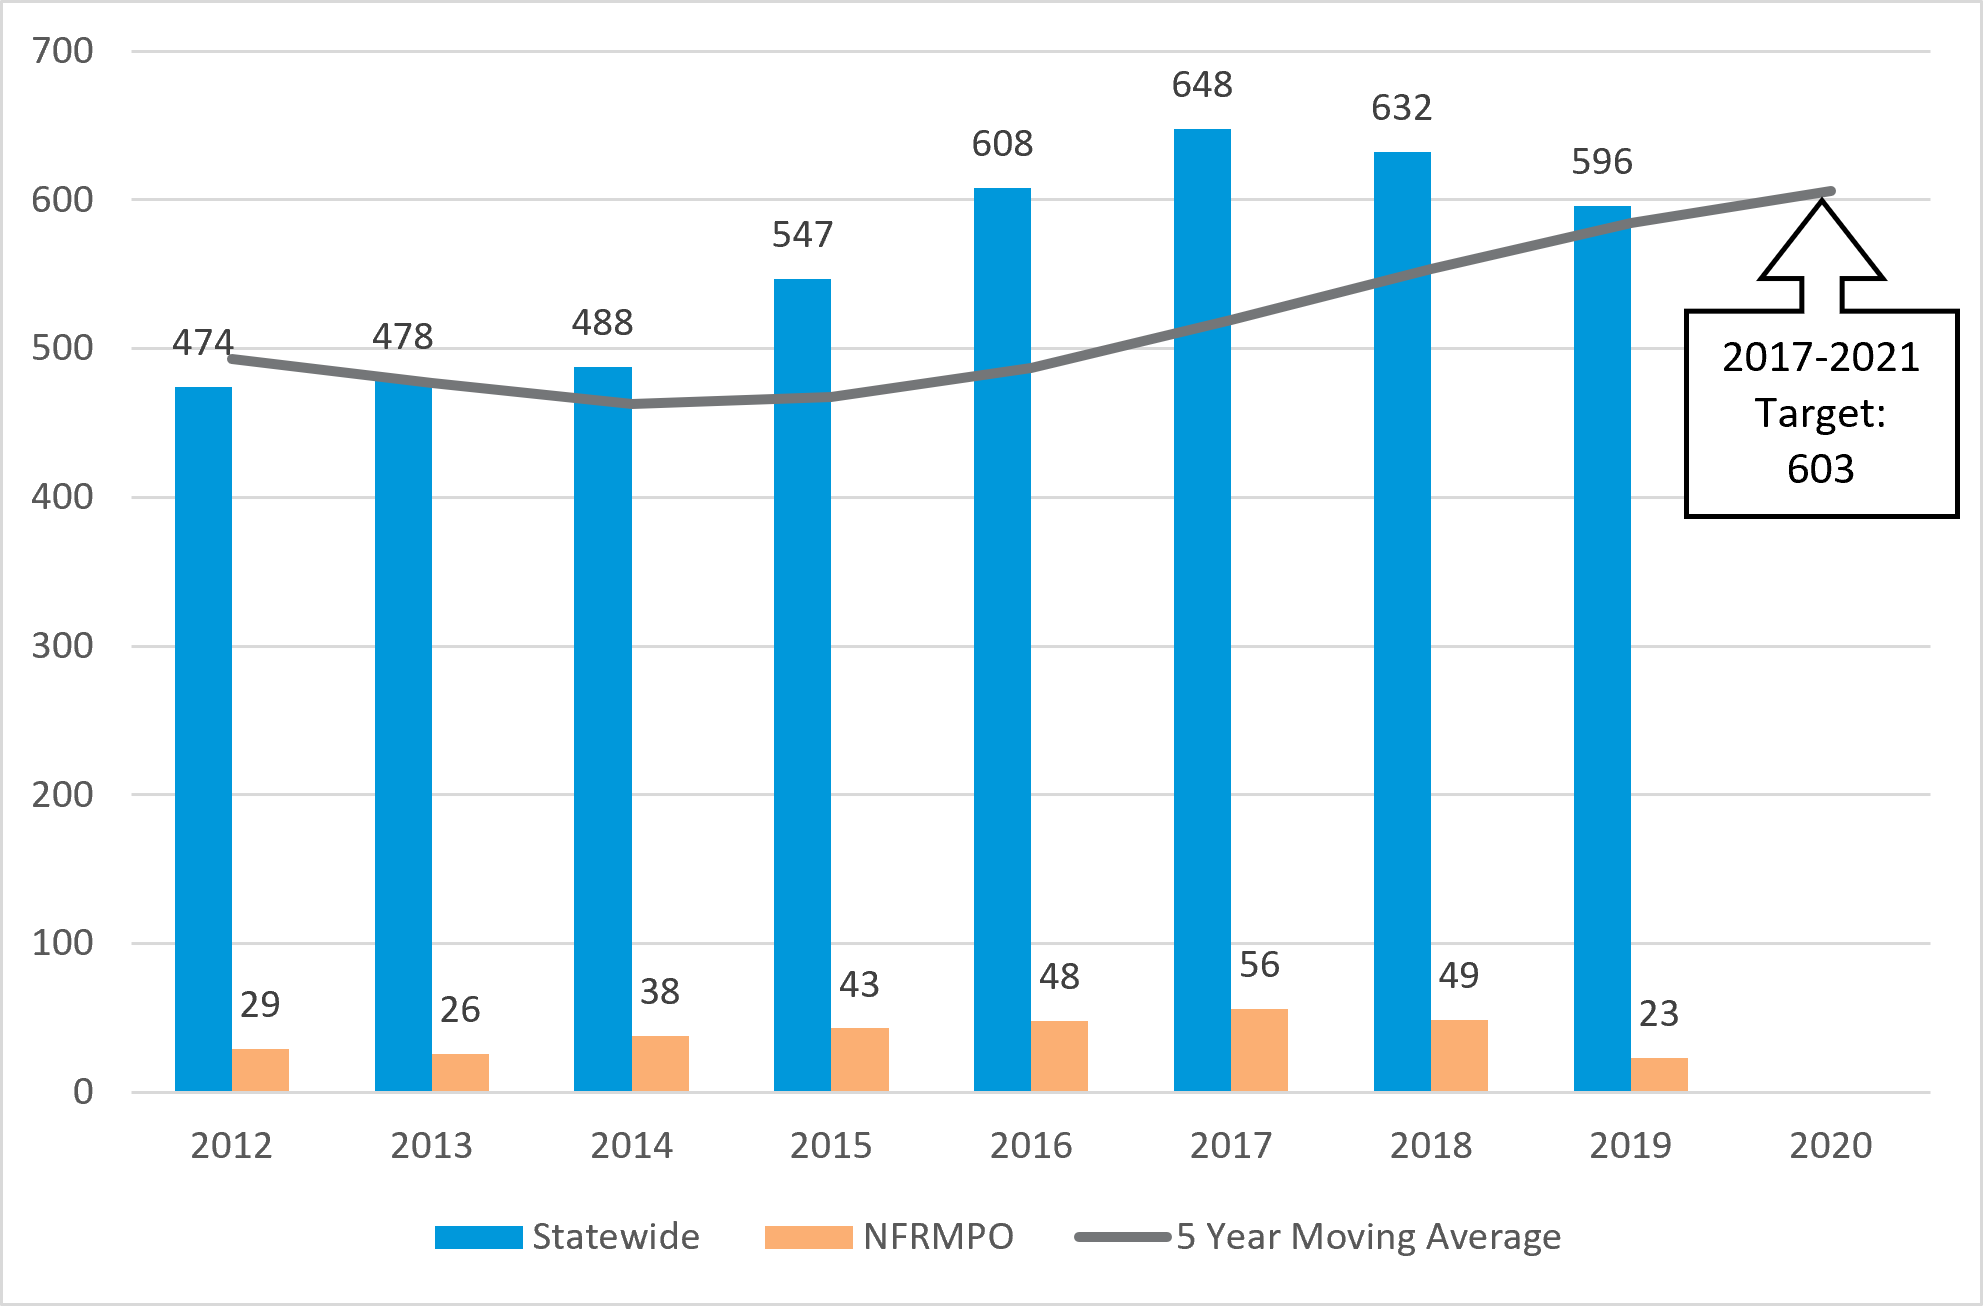 Chart of number of statewide and NFRMPO fatalities from 2012-2020 with 5 year moving average